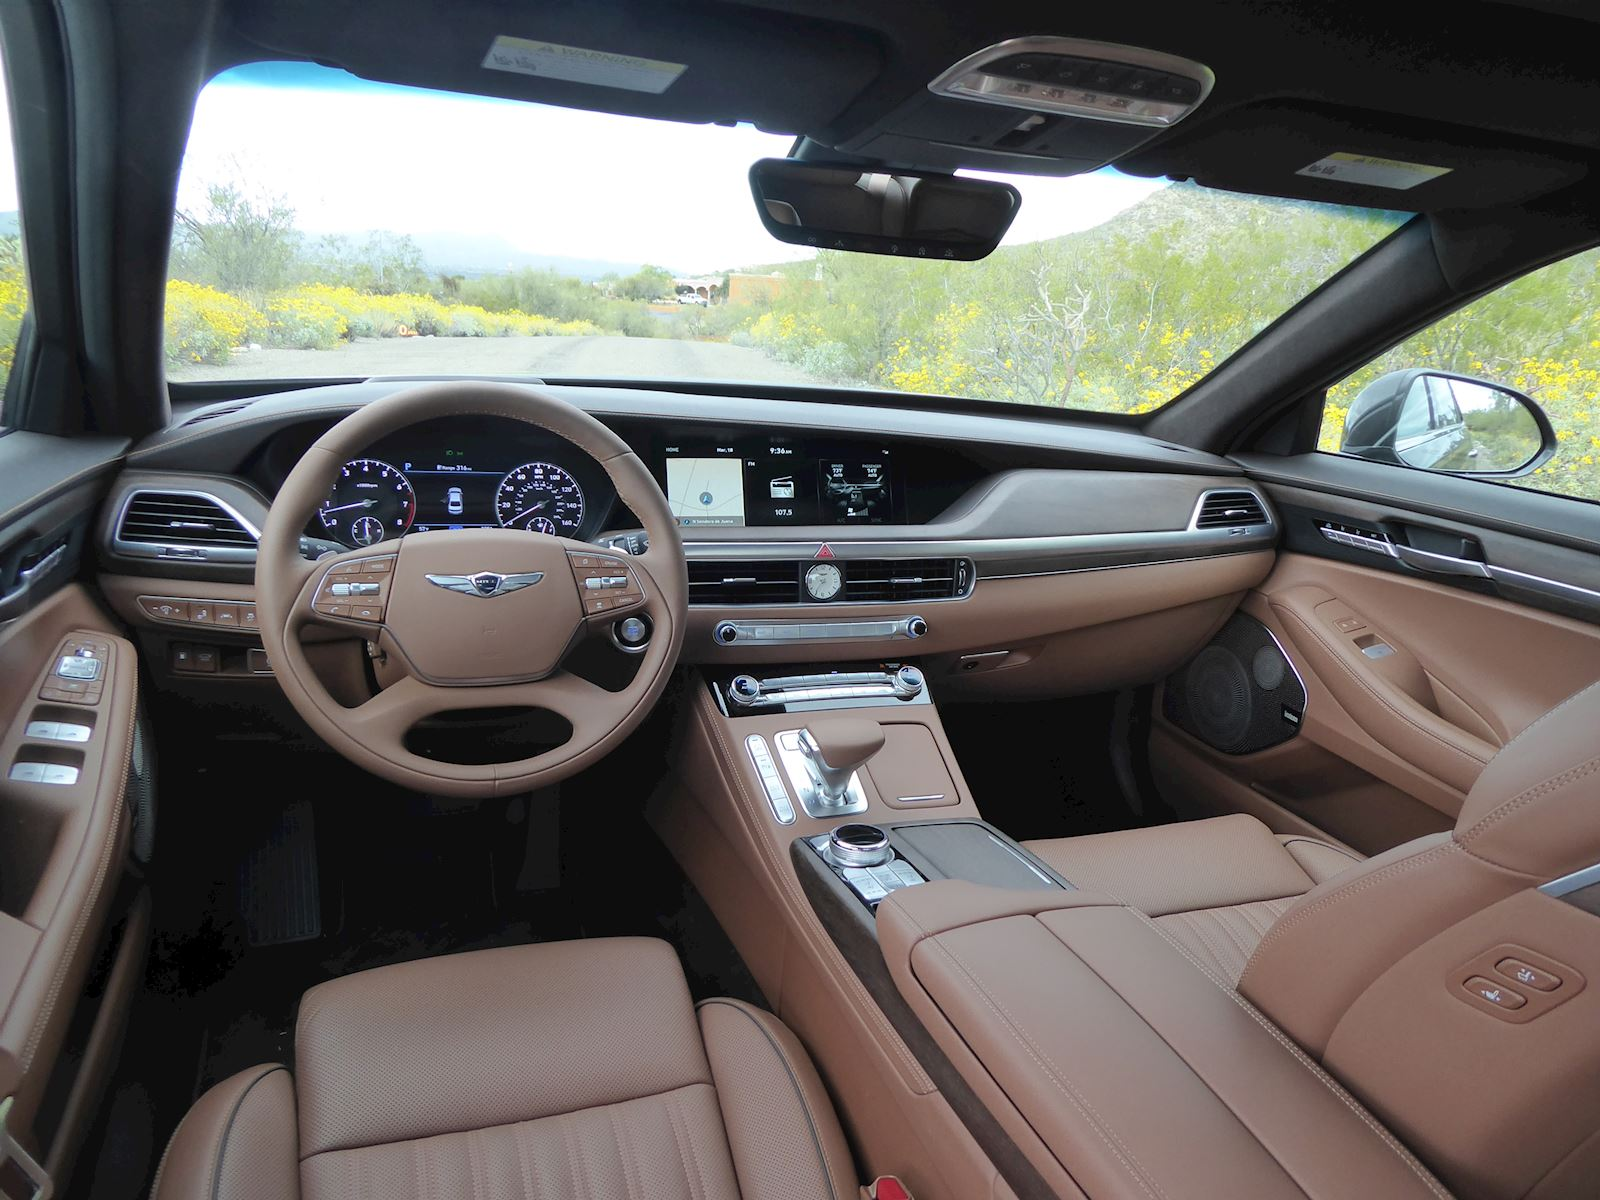 2020 Genesis G90 interior and dashboard view